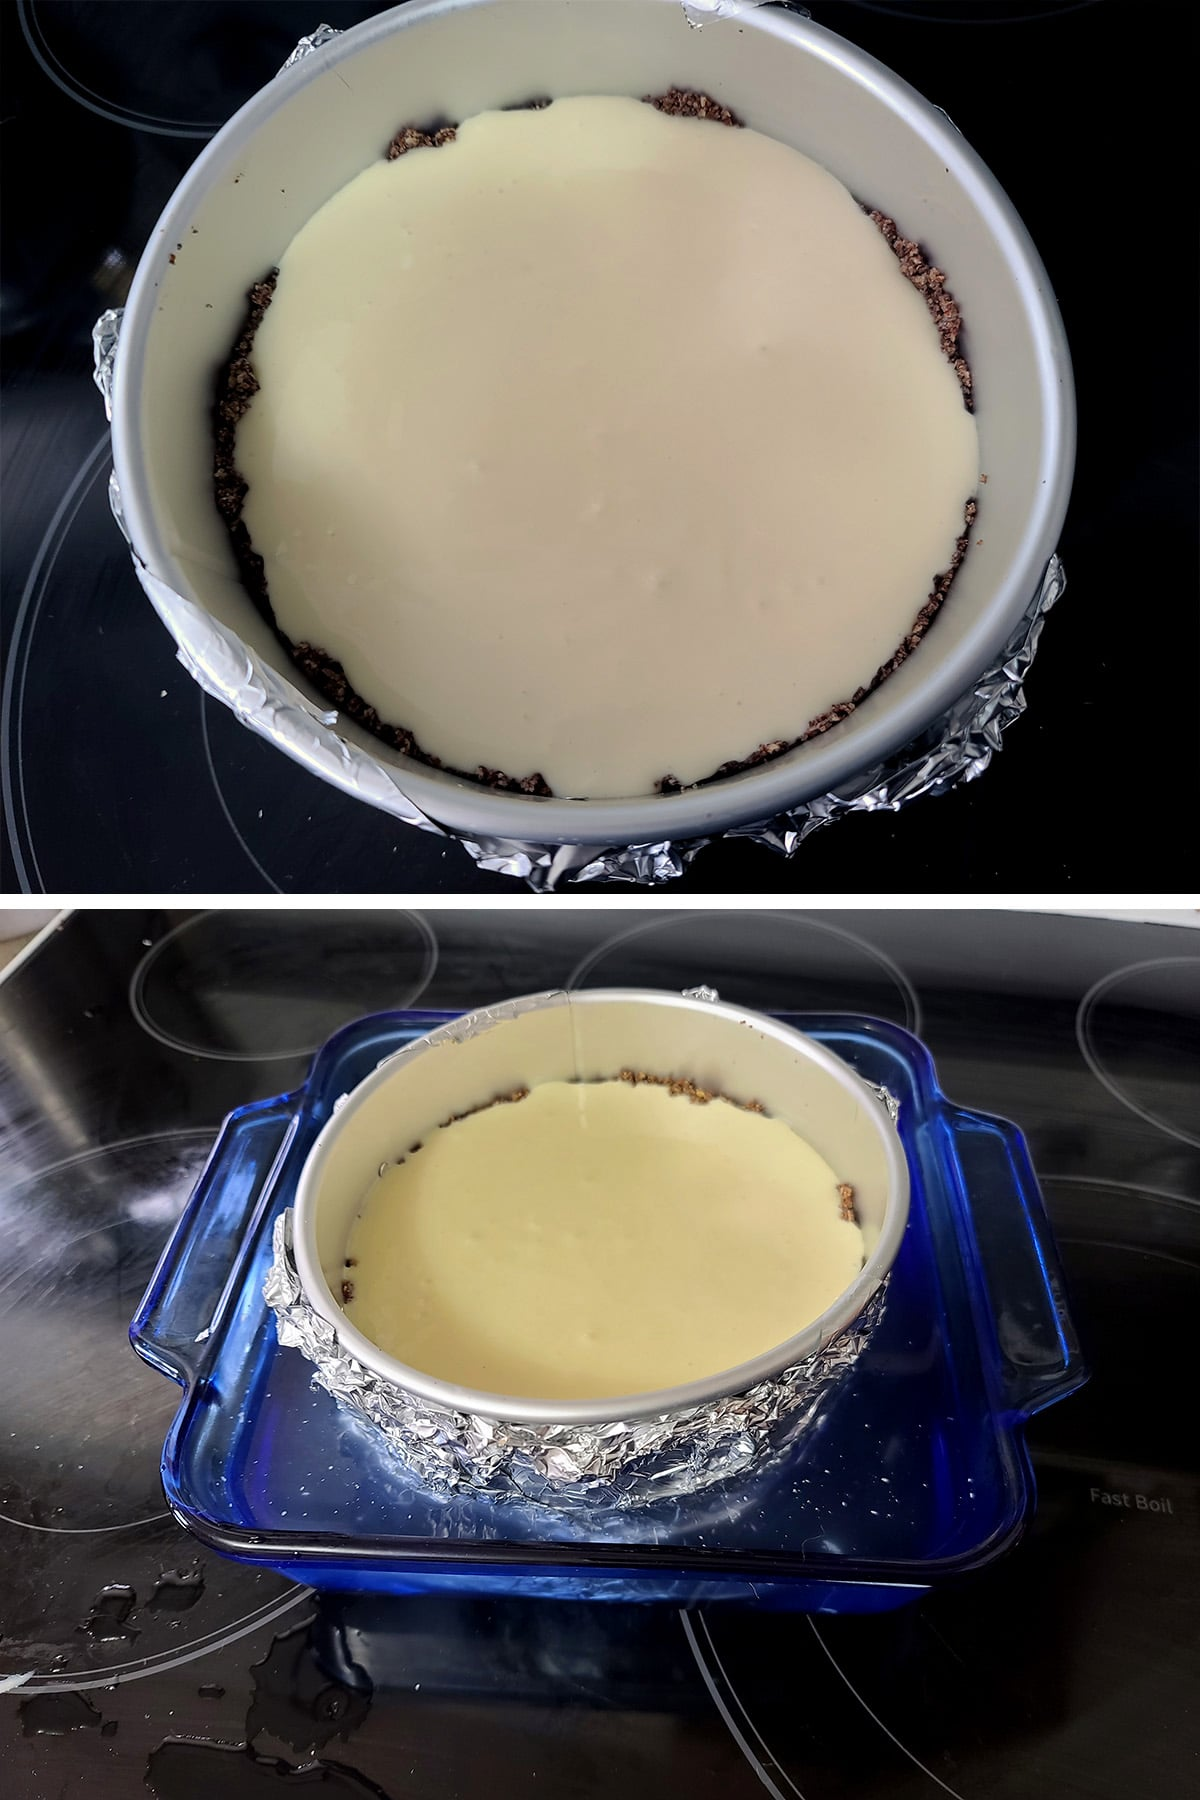 The prepared cheesecake is put in a separate pan, which is then filled with water.